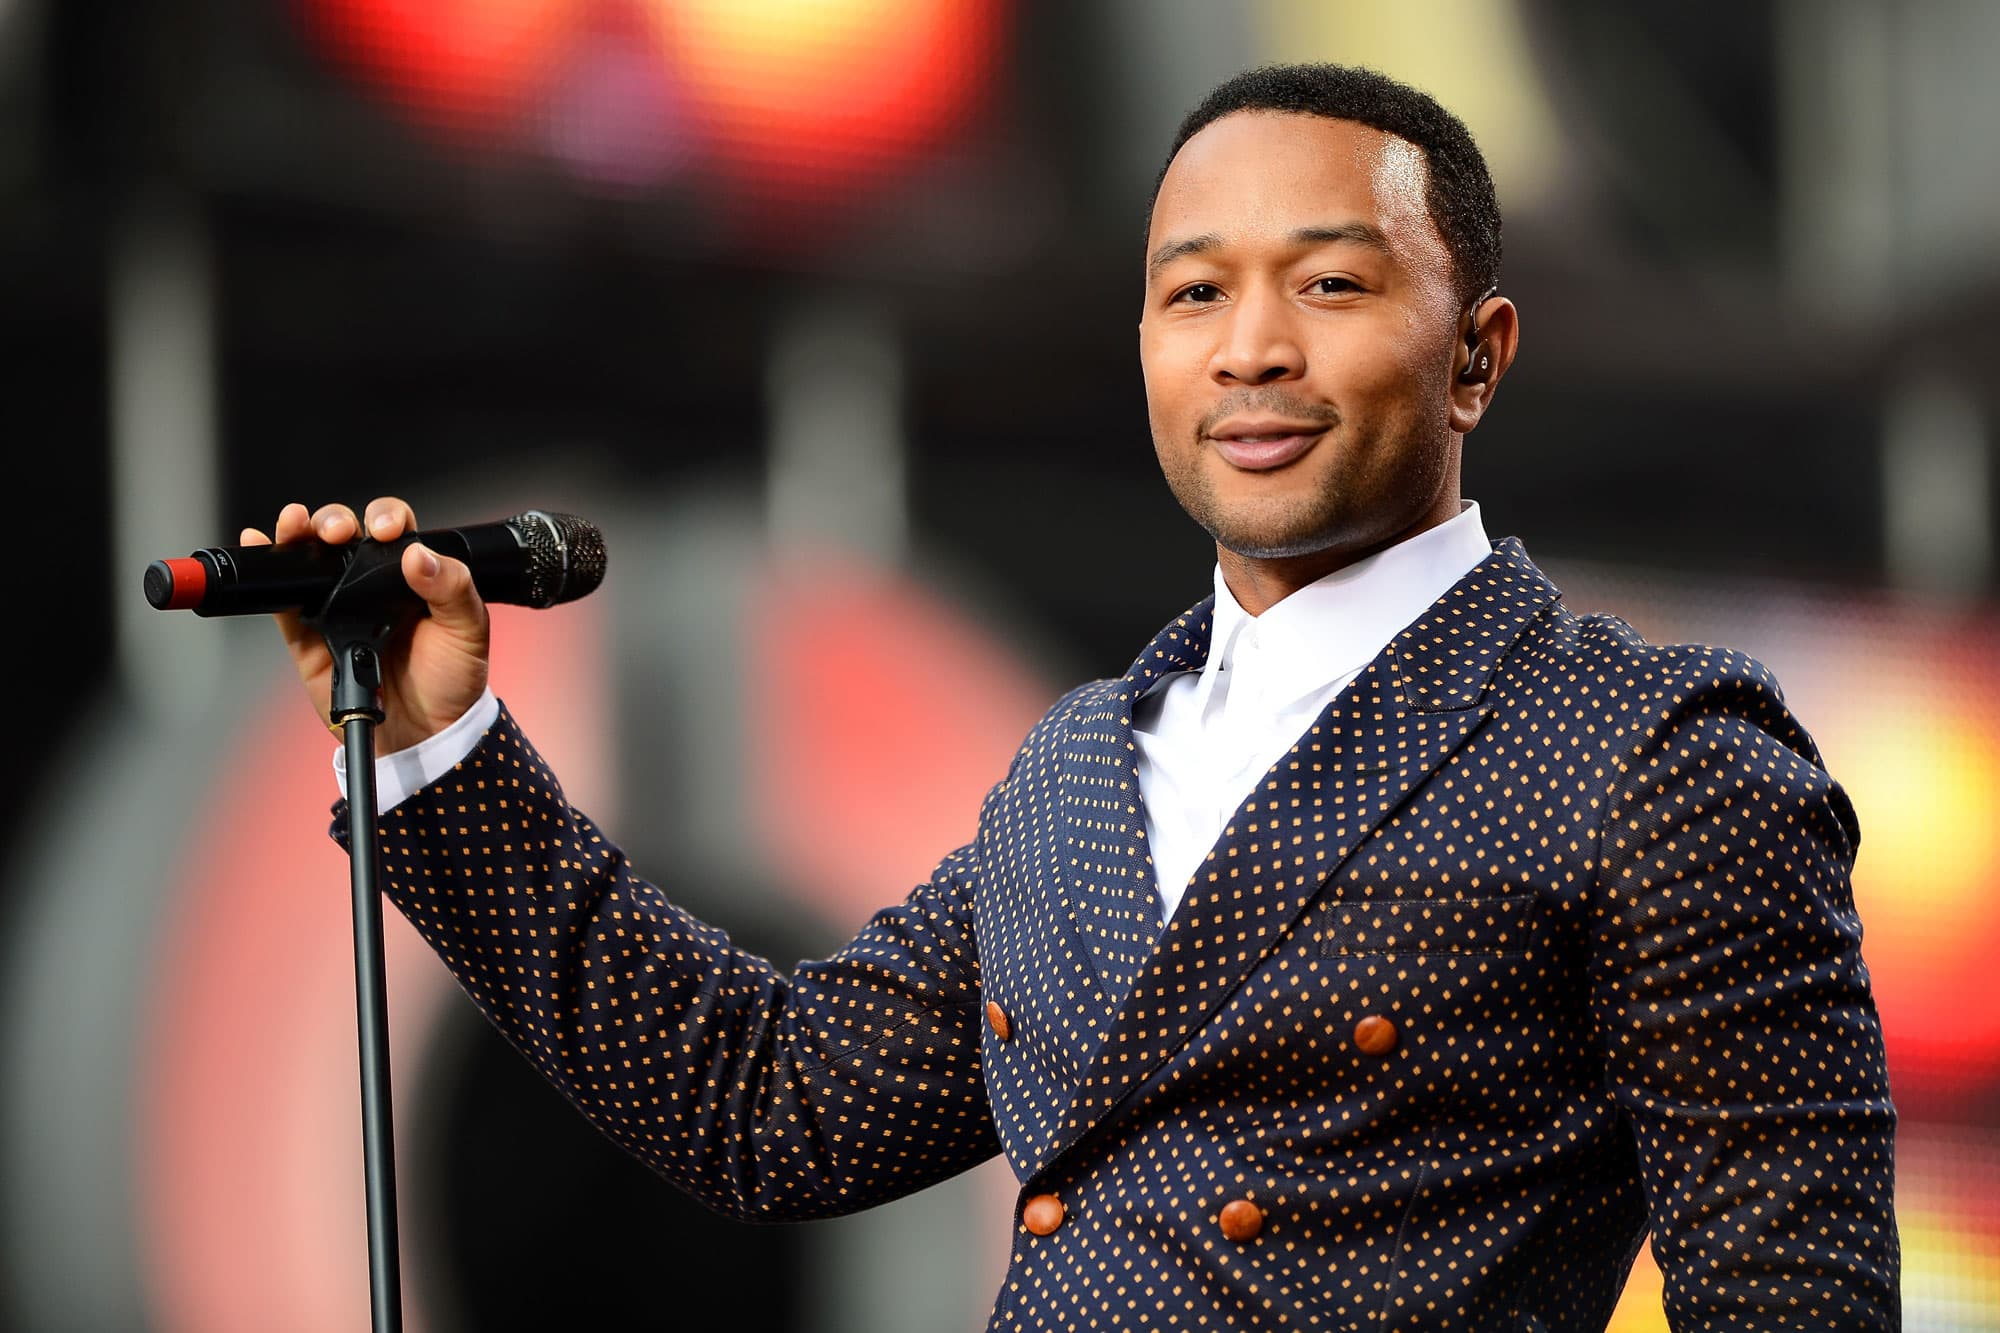 Google Assistant adds John Legend as one of six new voices